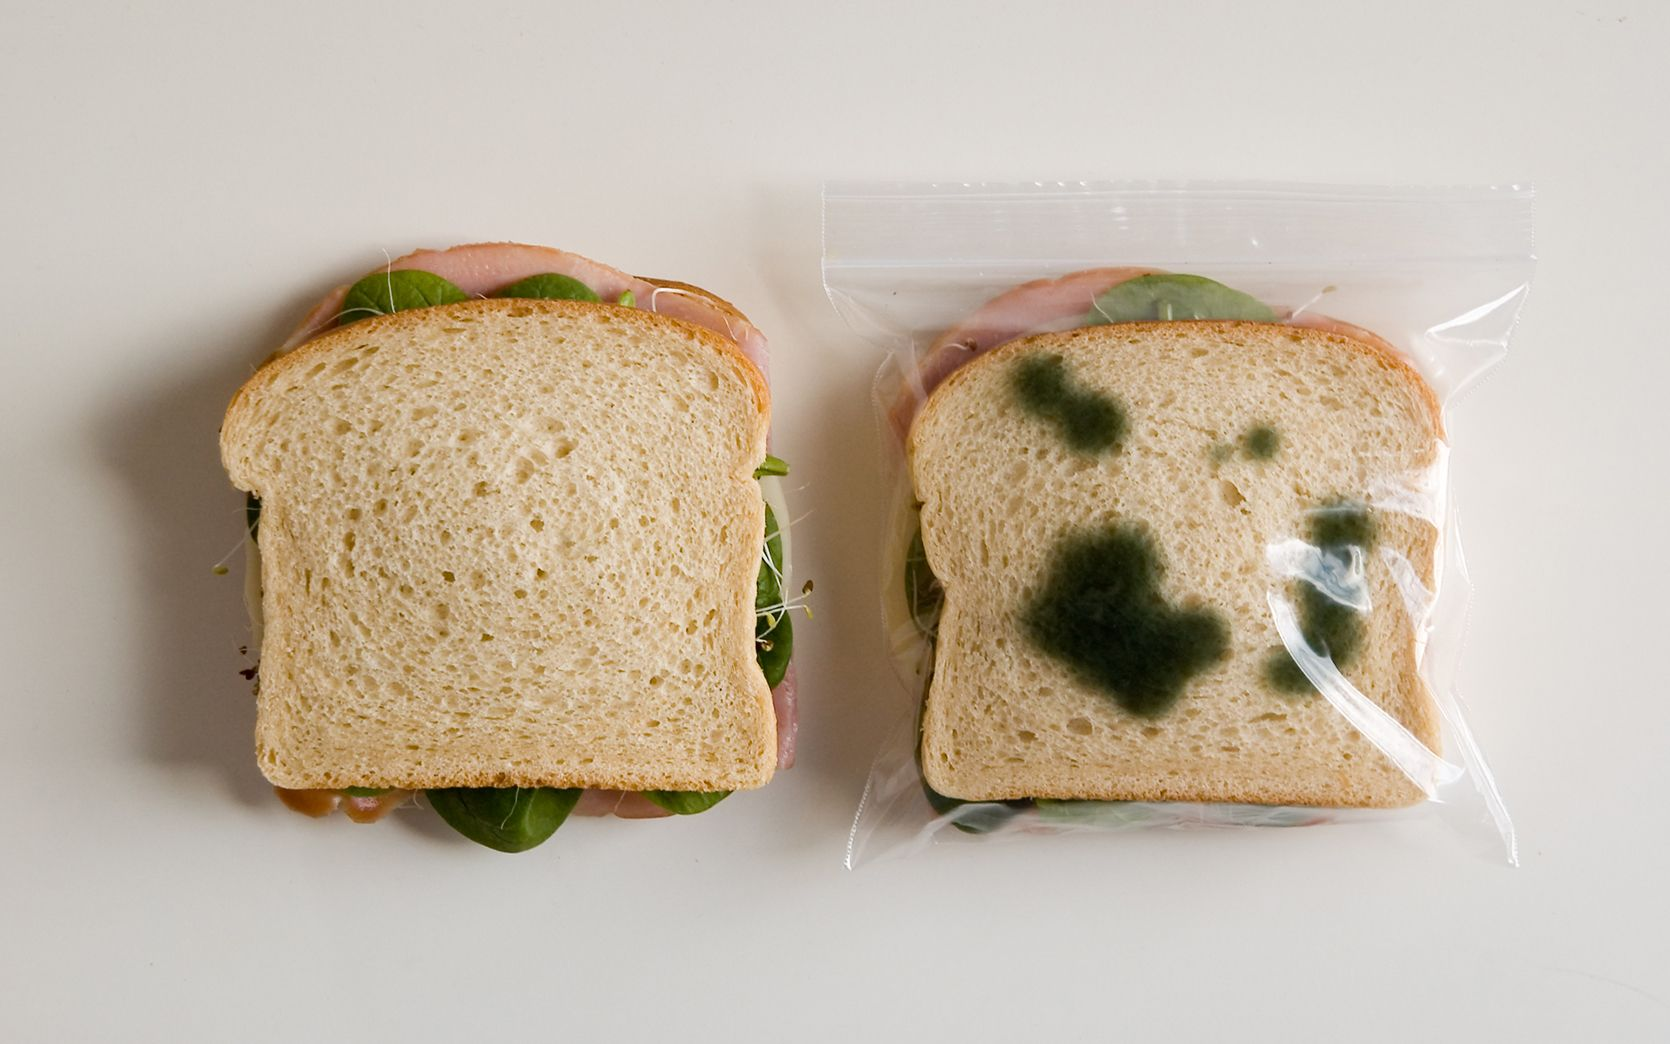 Anti-Theft Lunch Bags... amusing